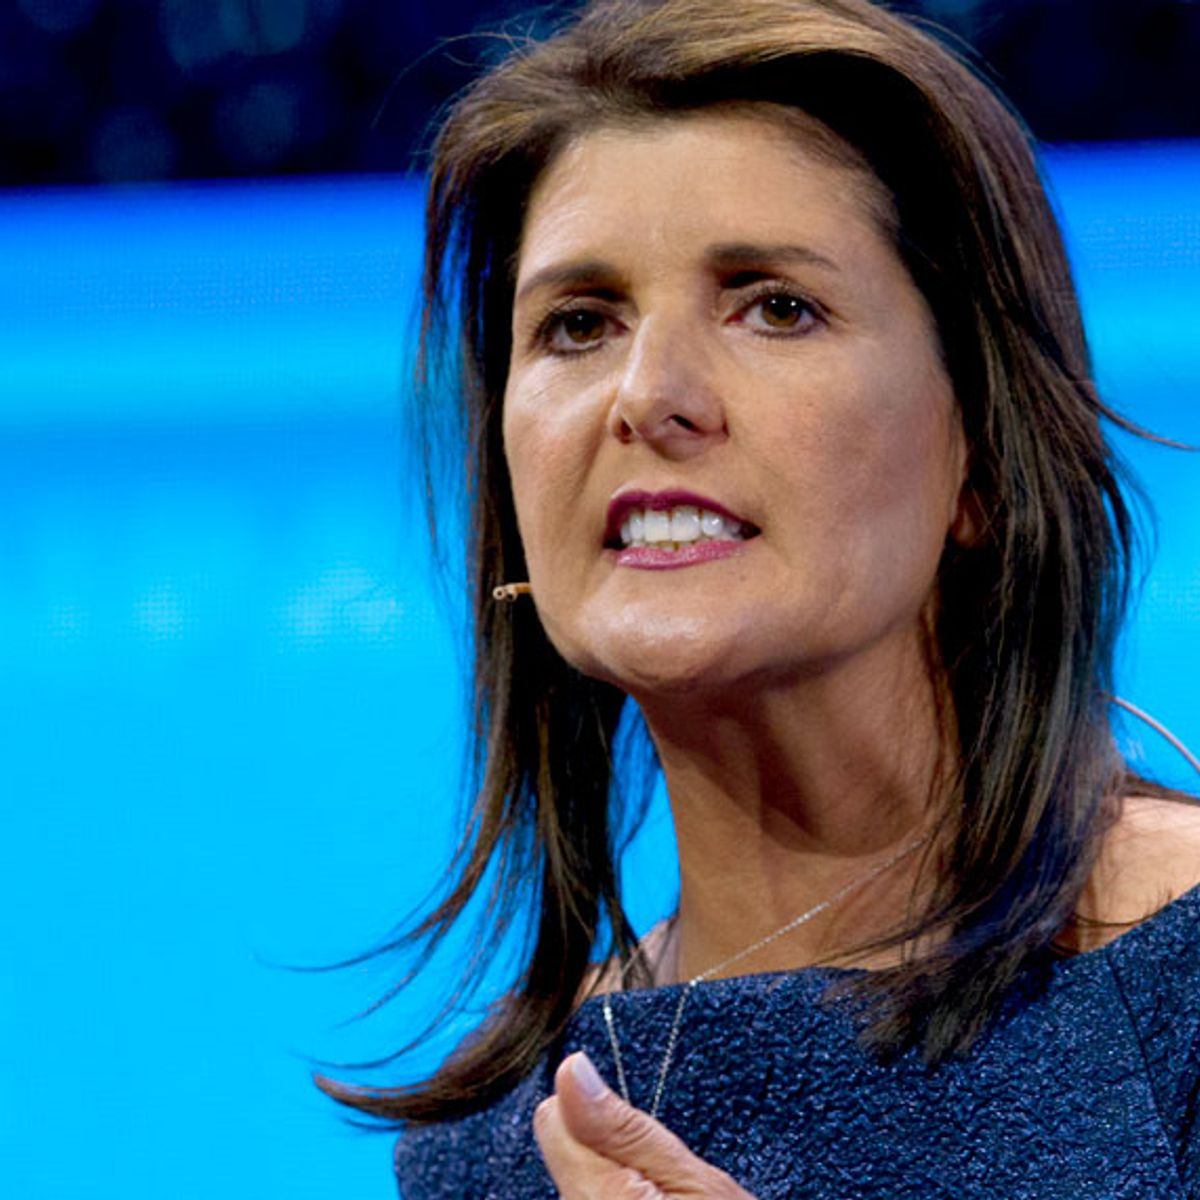 """Nikki Haley """"disqualified for national office"""" after Confederate flag remarks, """"View"""" co-hosts say"""